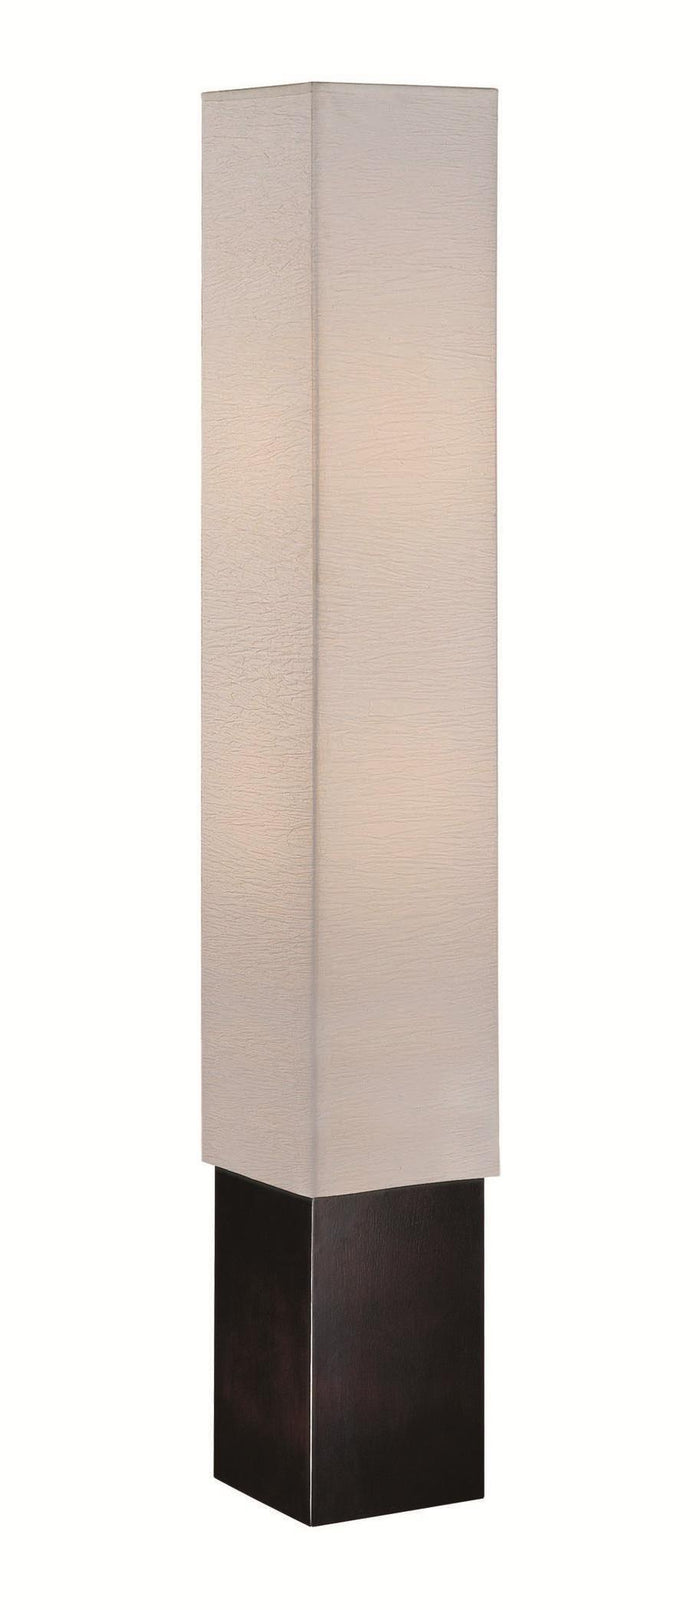 Lite Source LS-81277 2 Light Floor Lamp Dark Walnut Paper Shade * (CURRENTLY ON FURNITURE SHOWROOM FLOOR)